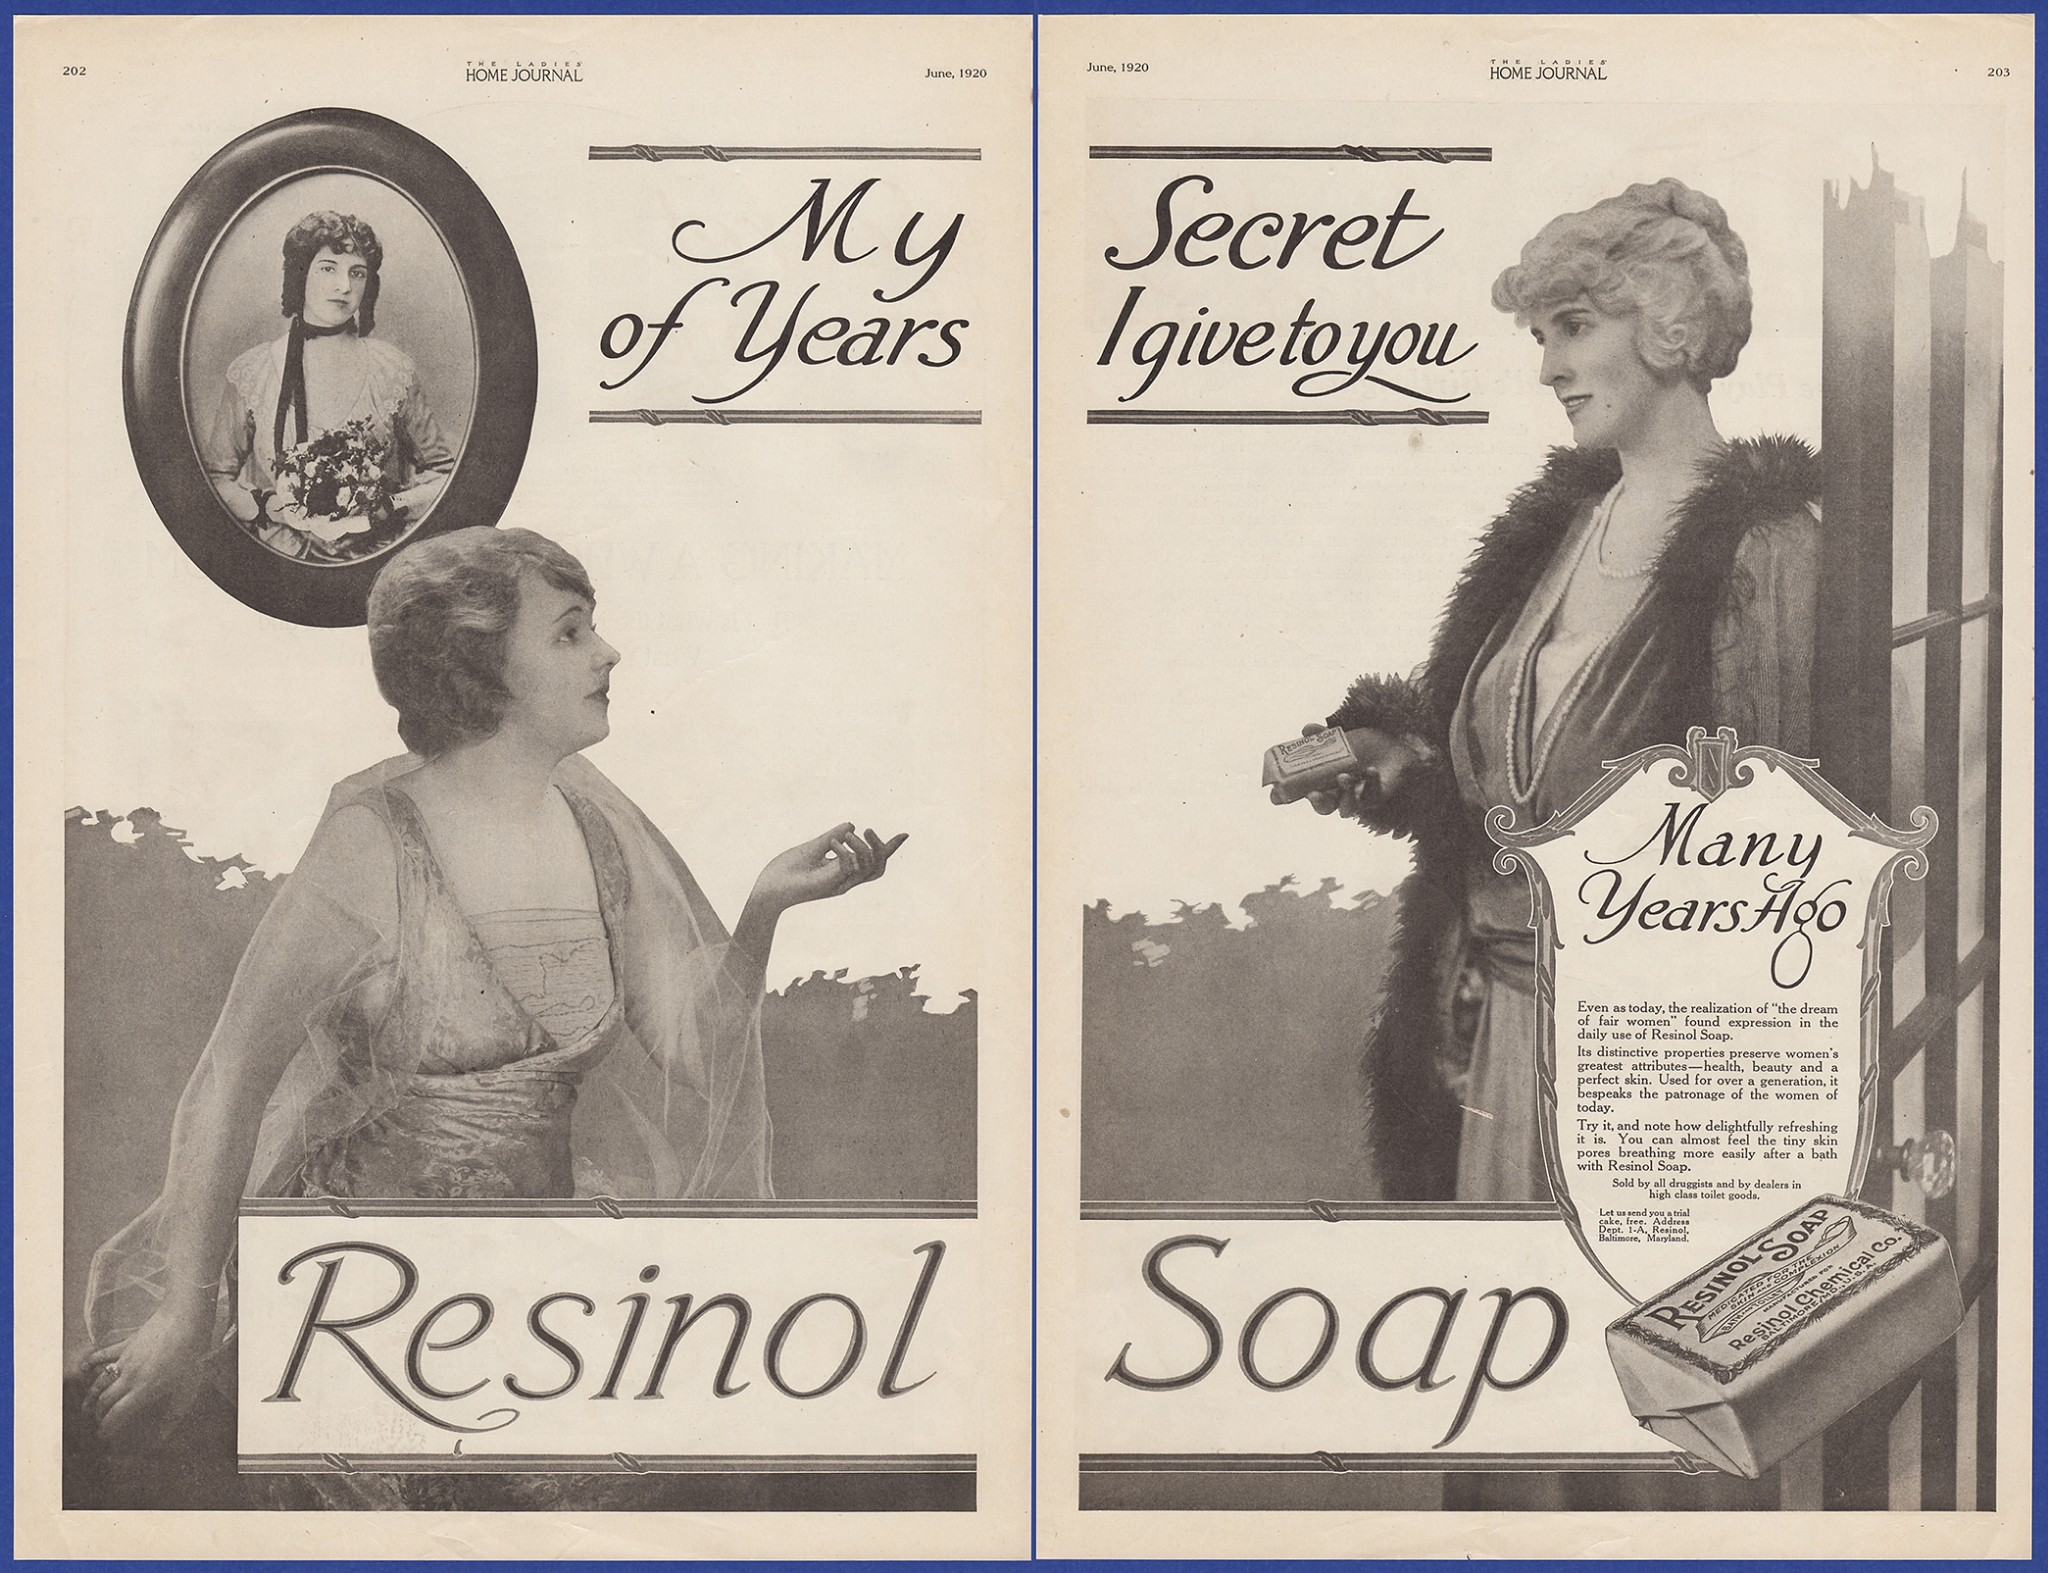 Details about Vintage 1920 RESINOL Soap Bathroom Art Decor Ephemera Print  Ad 1920's